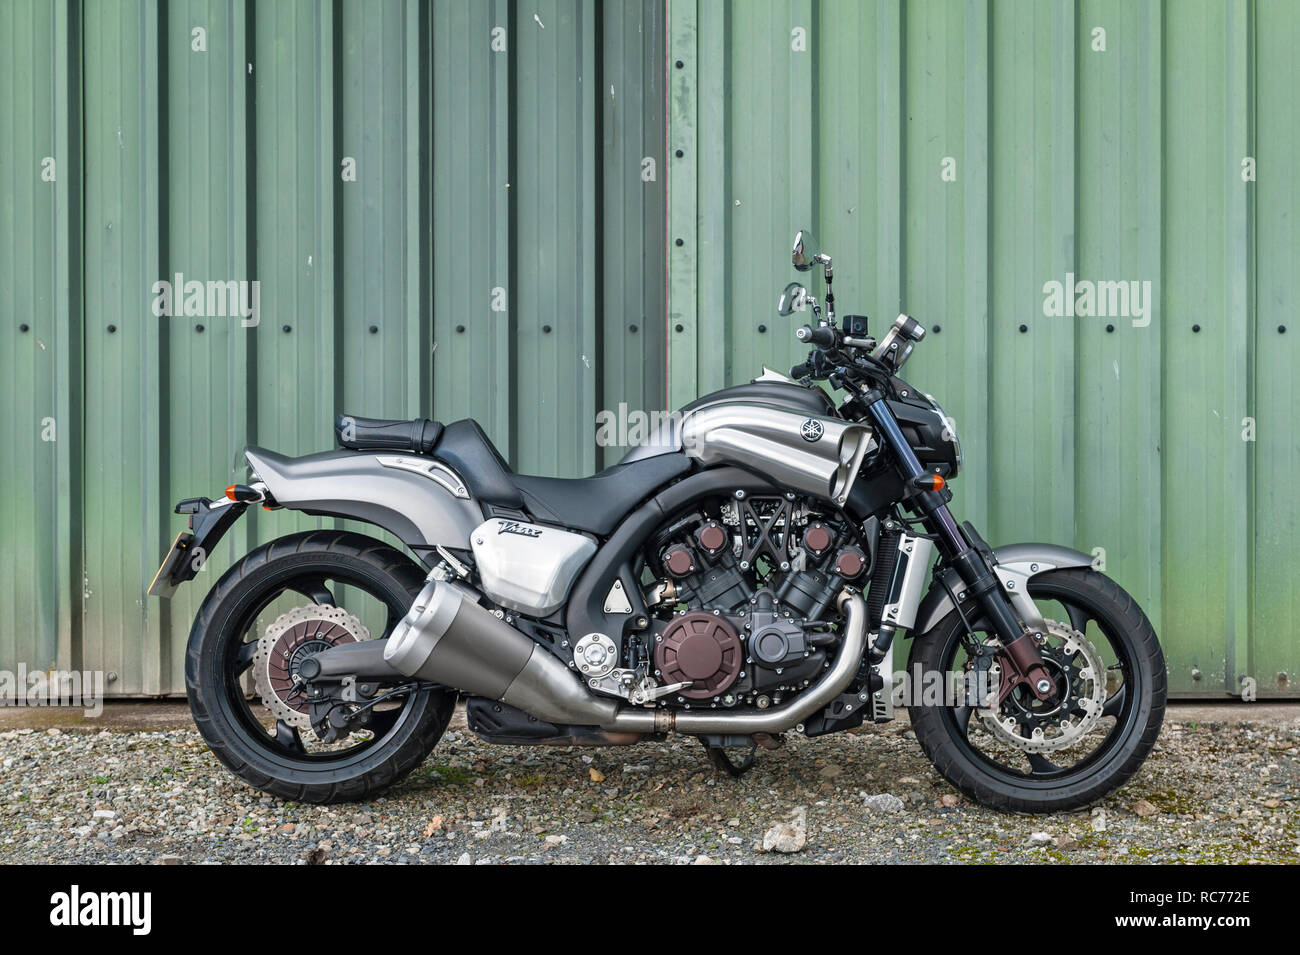 hight resolution of yamaha vmax motorcycle with a 4 cylinder liquid cooled 1679cc v4 engine